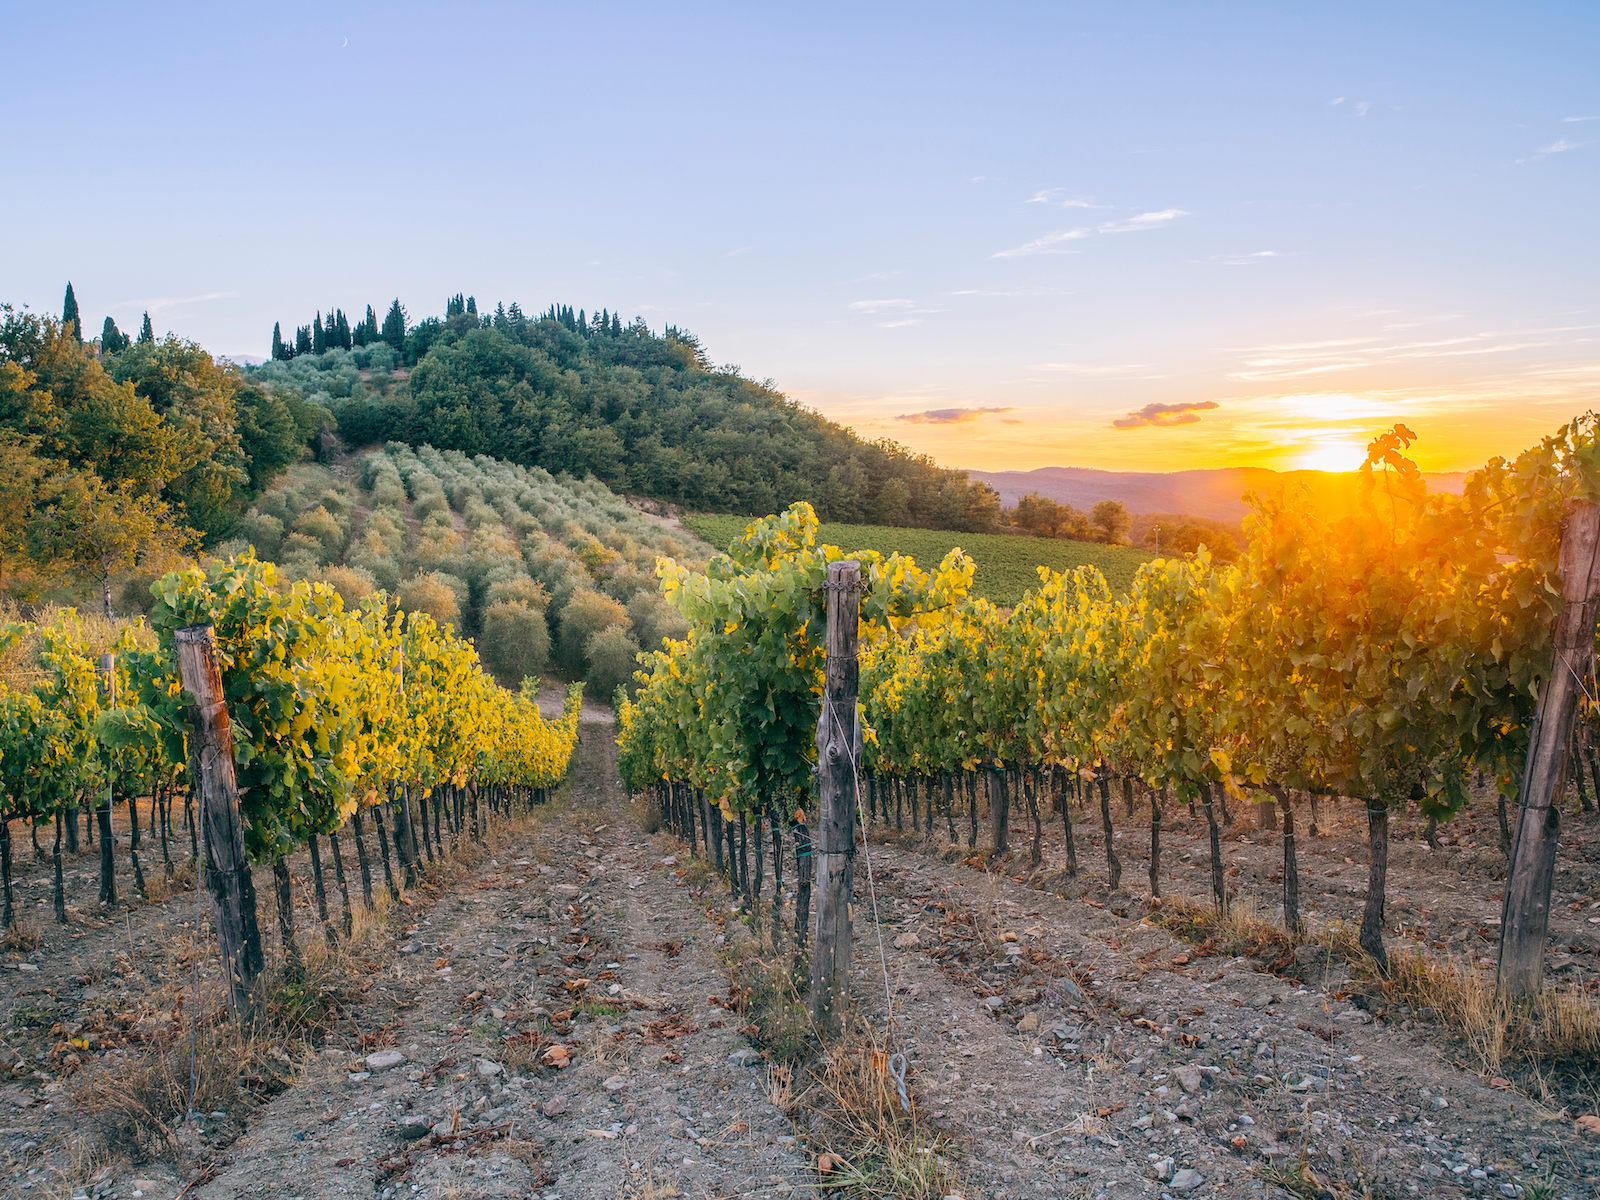 This App Is About to Make Visiting a Winery So Much Easier